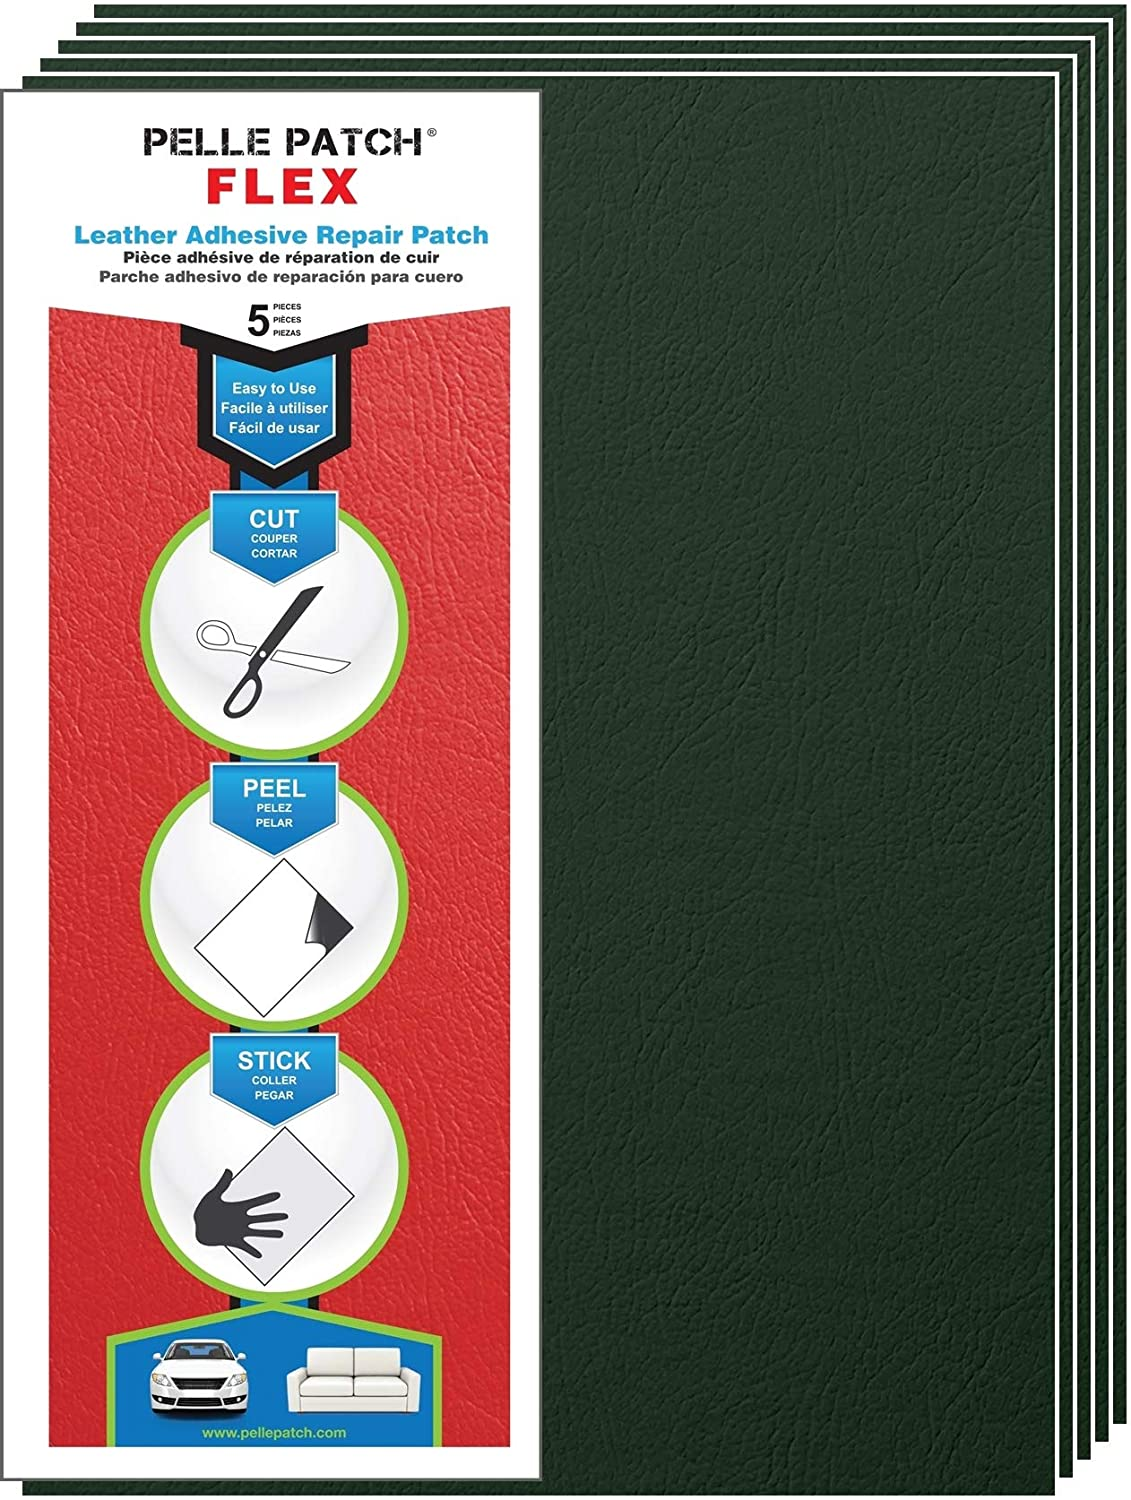 Pelle Patch - 5X Leather & Vinyl Adhesive Repair Patch - 25 Colors Available - Flex 8x11 - Medium Green